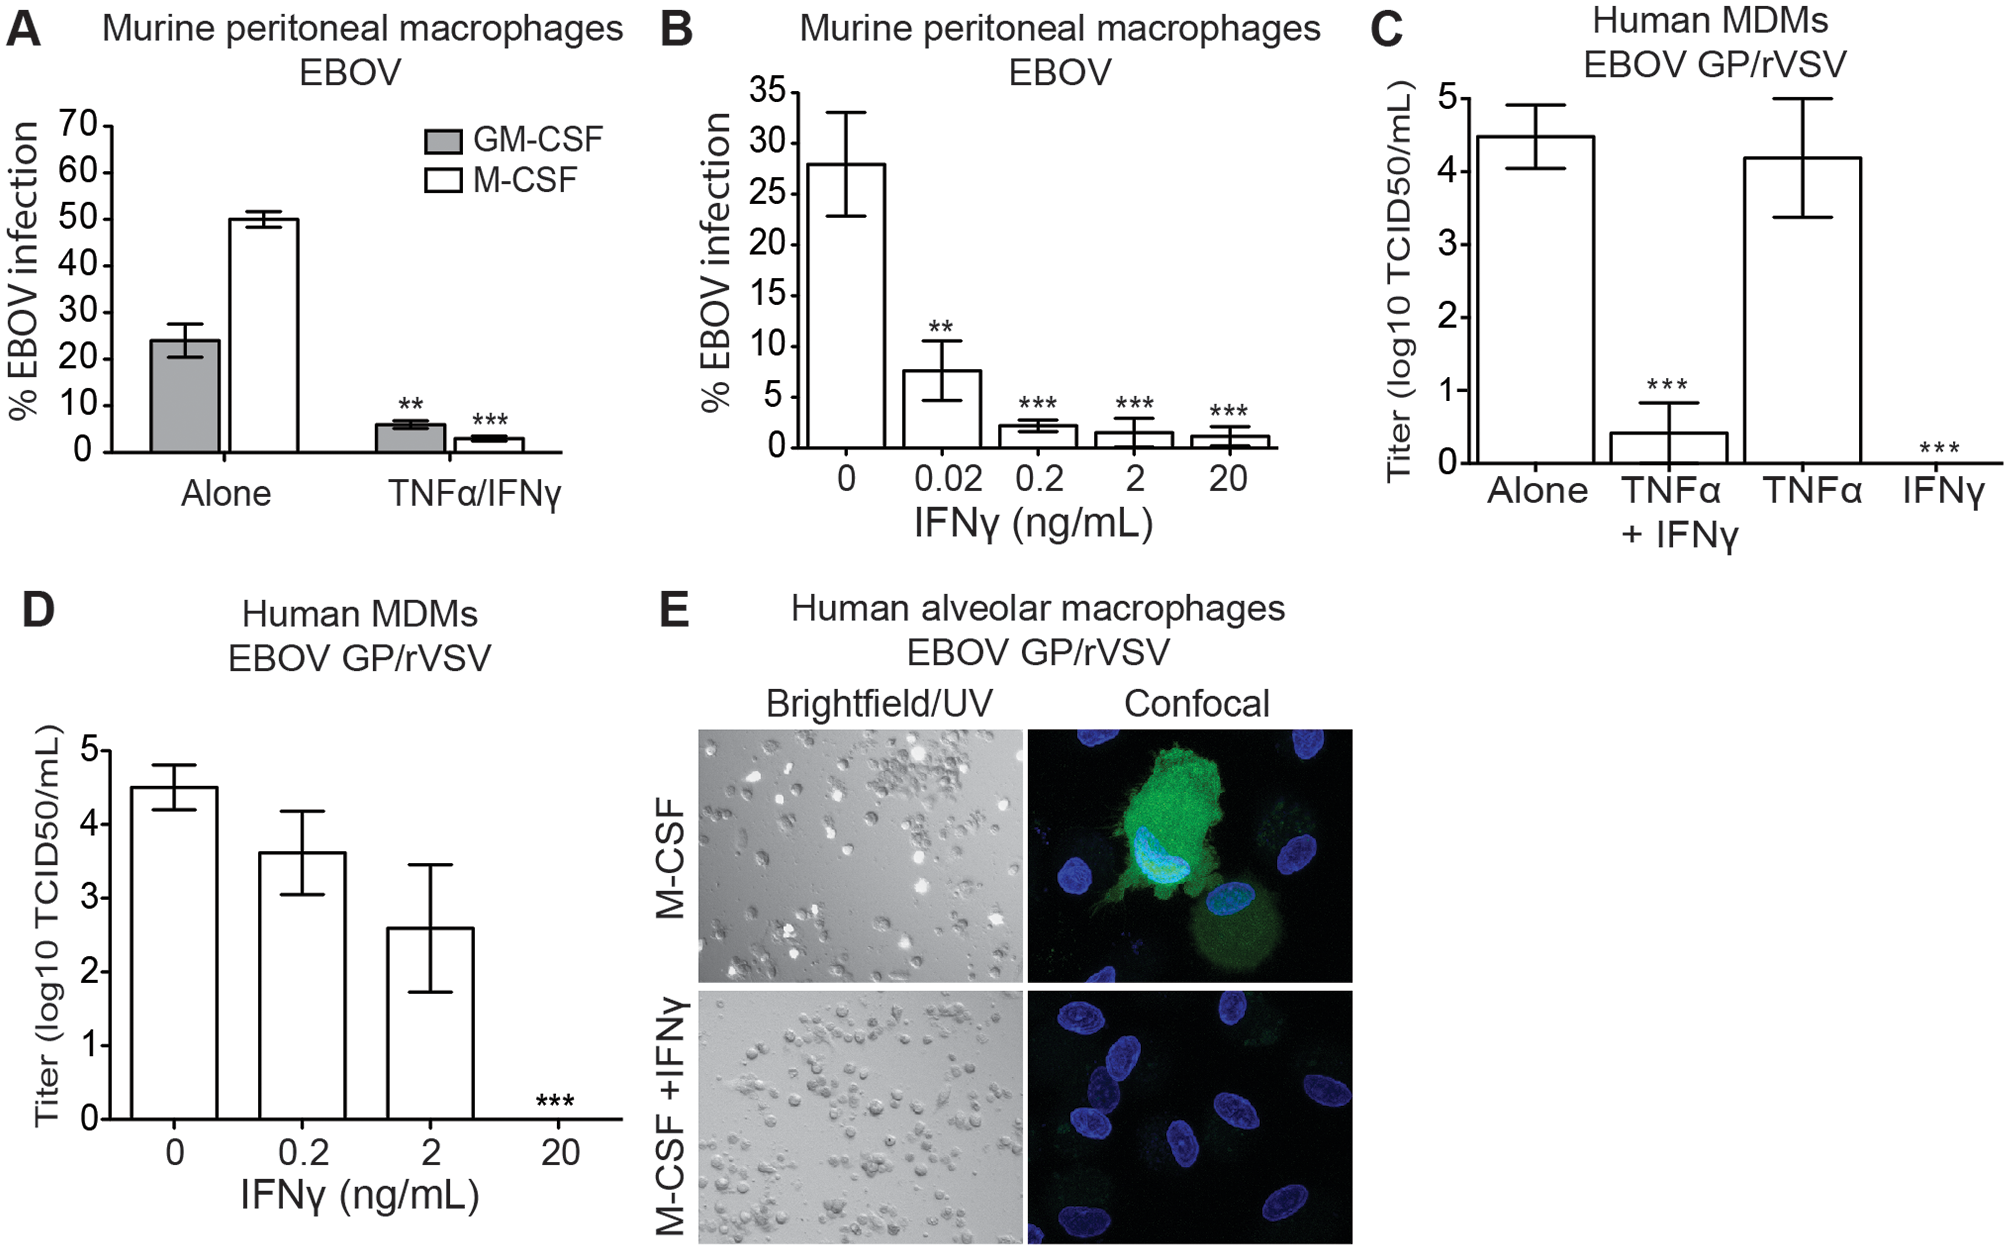 IFNγ-treated macrophages are resistant to EBOV infection.